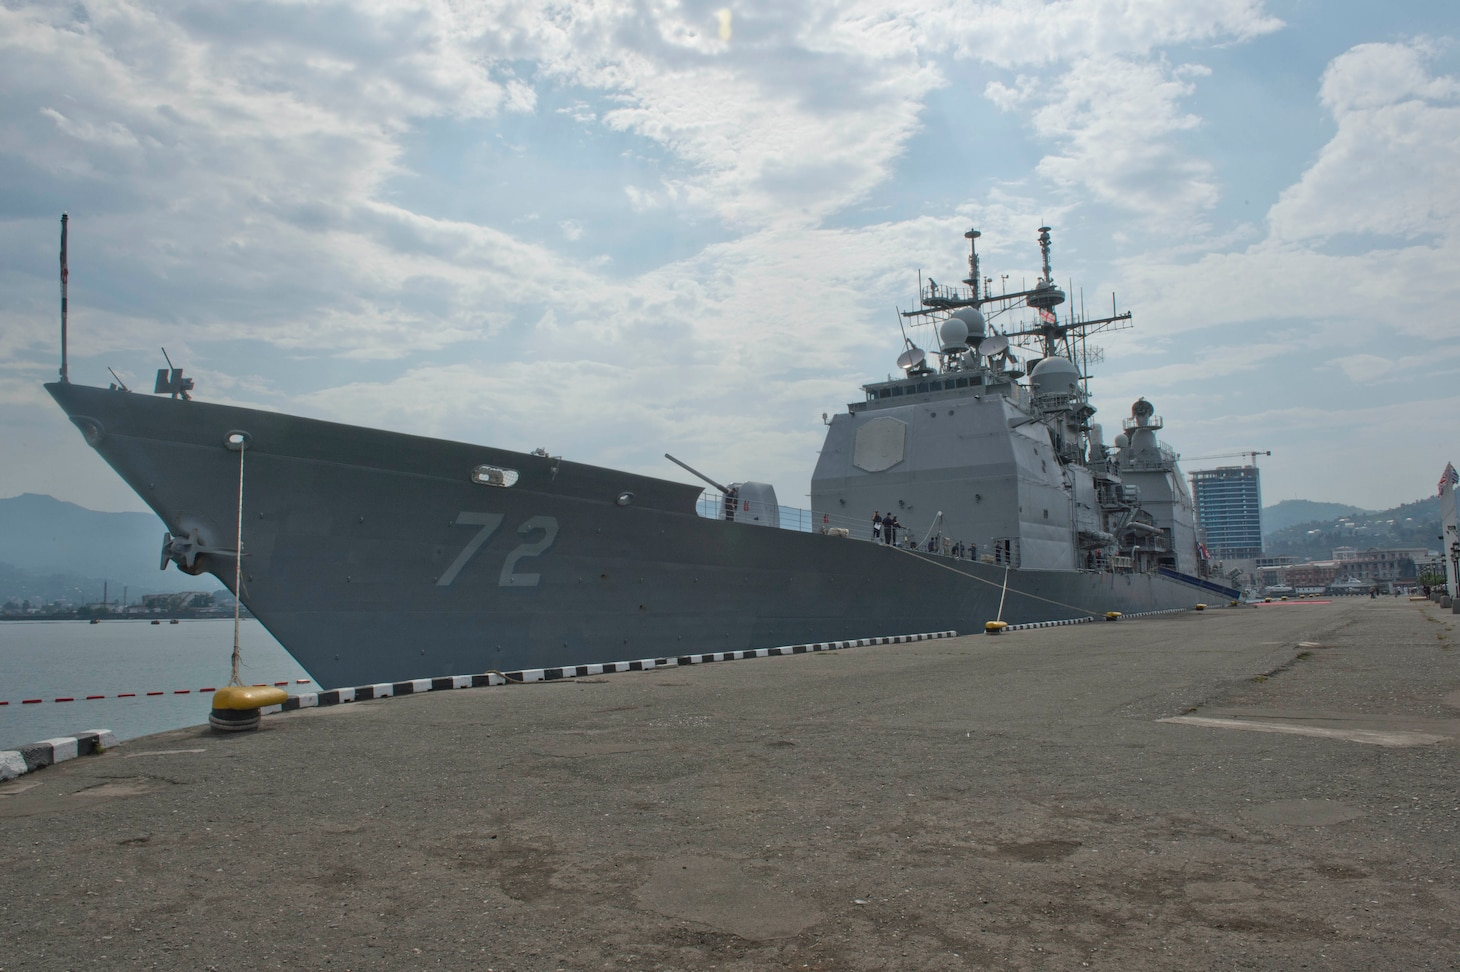 The Ticonderoga-class guided-missile cruiser USS Vella Gulf (CG 72) sits pier side in Batumi, Georgia for a scheduled port visit. Vella Gulf, homeported in Norfolk, Va., is conducting naval operations with allies in the U.S. 6th Fleet area of operations in order to advance security and stability in Europe.